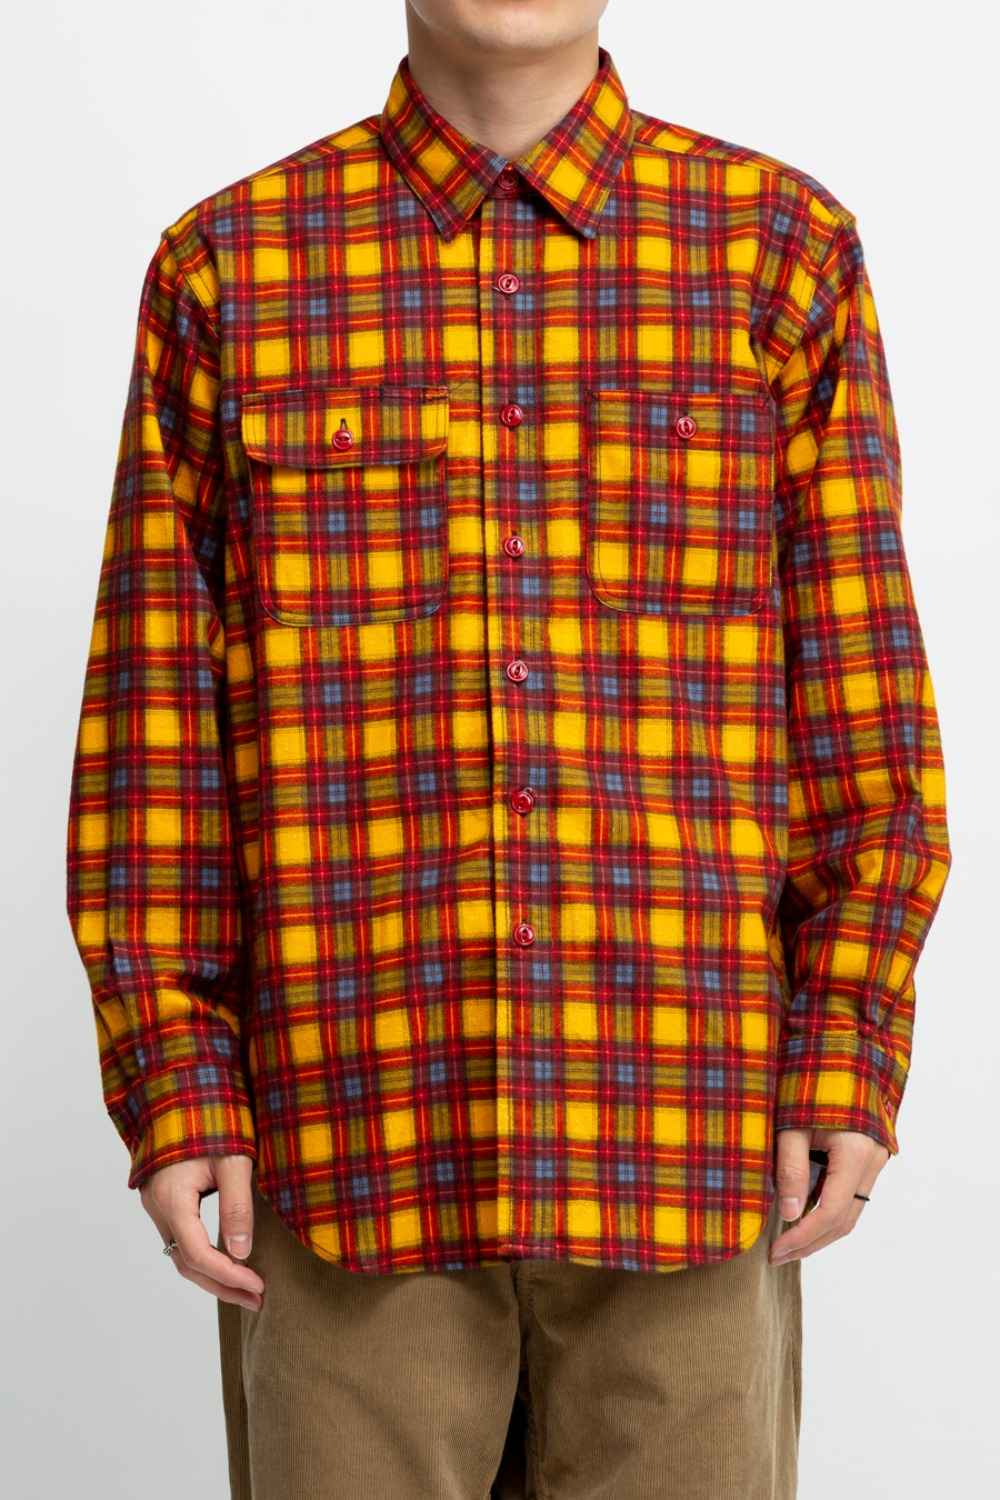 UTILITY SHIRT GOLD RED COTTON BRUSHED PLAID